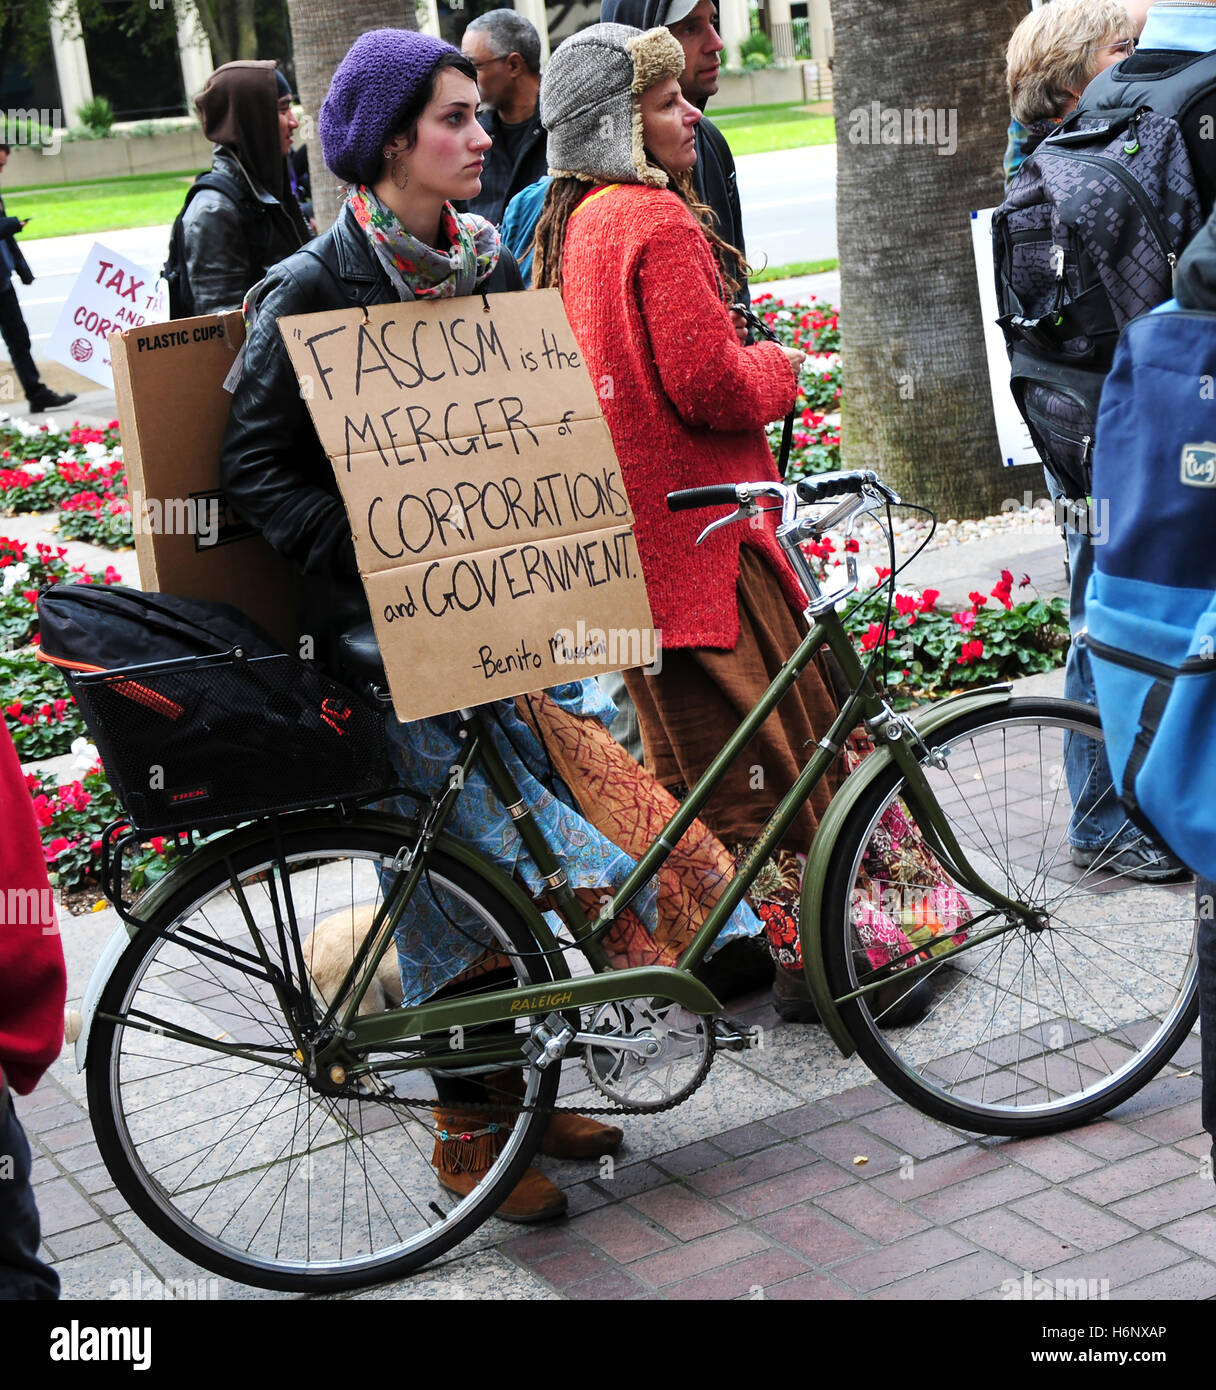 A activist holding a sign reading 'Fascism is the merger of corporations and government.' at a protest of - Stock Image